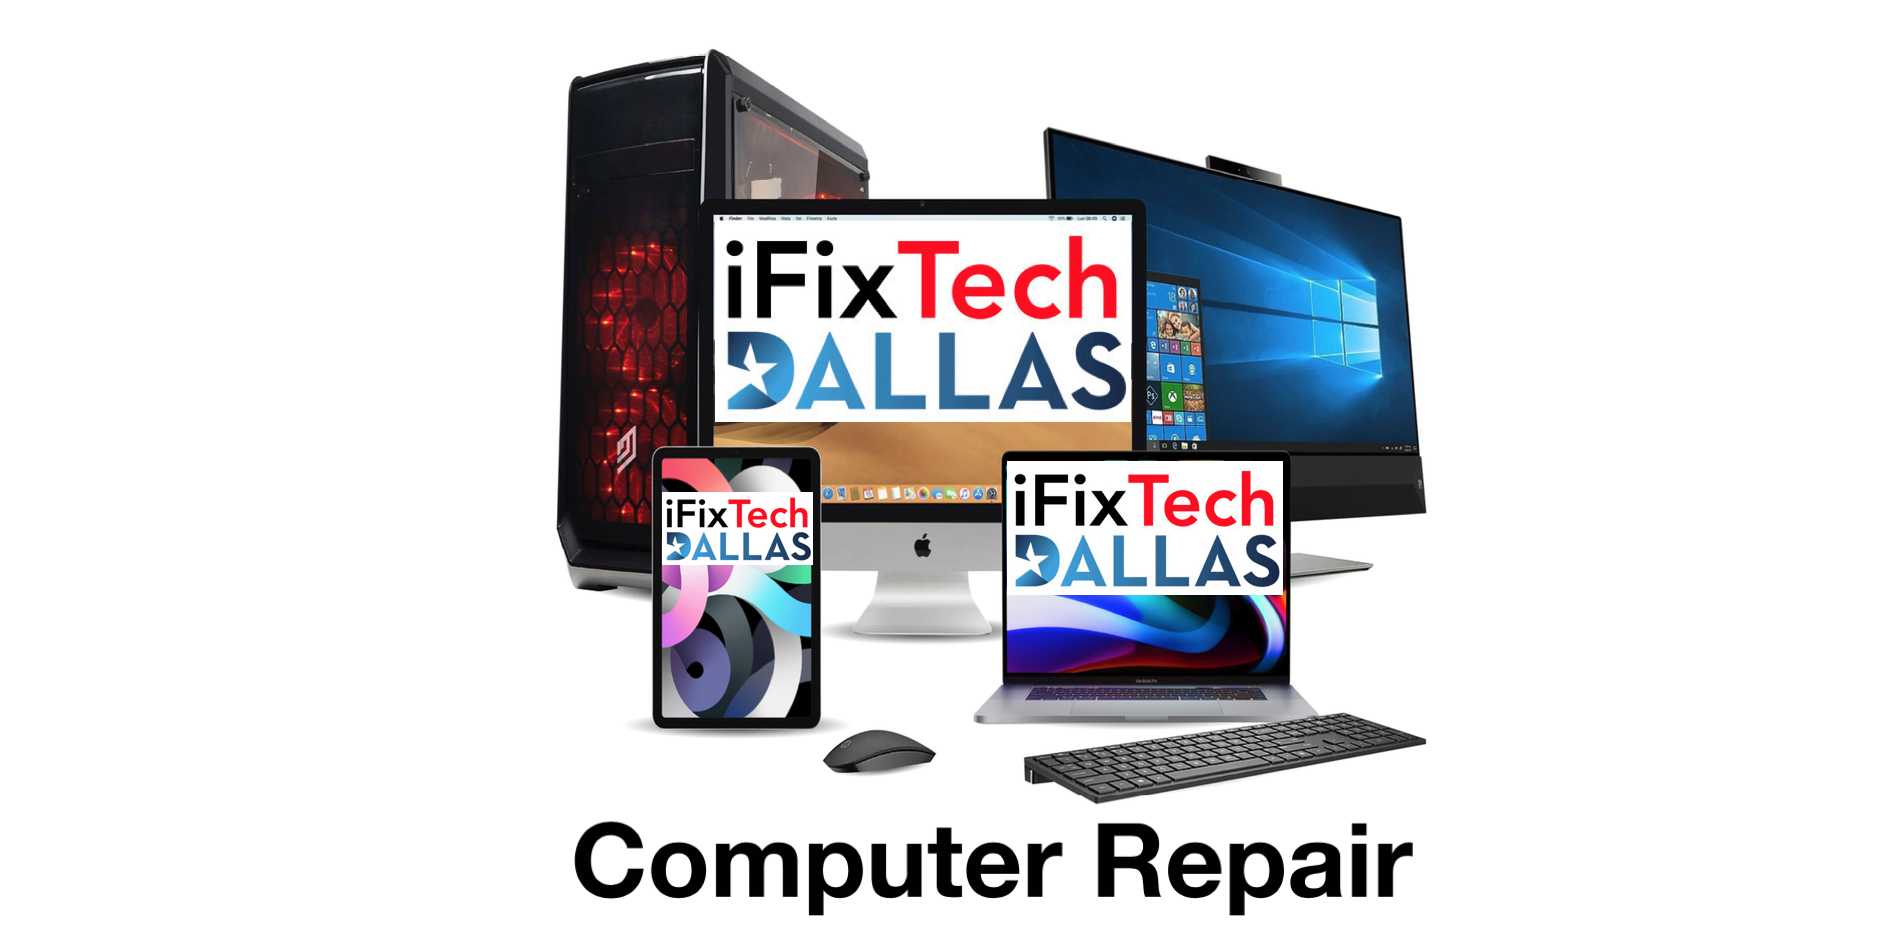 iFix Tech Announces Full Computer, Laptop, and Phone Repair and Recovery Services In Texas